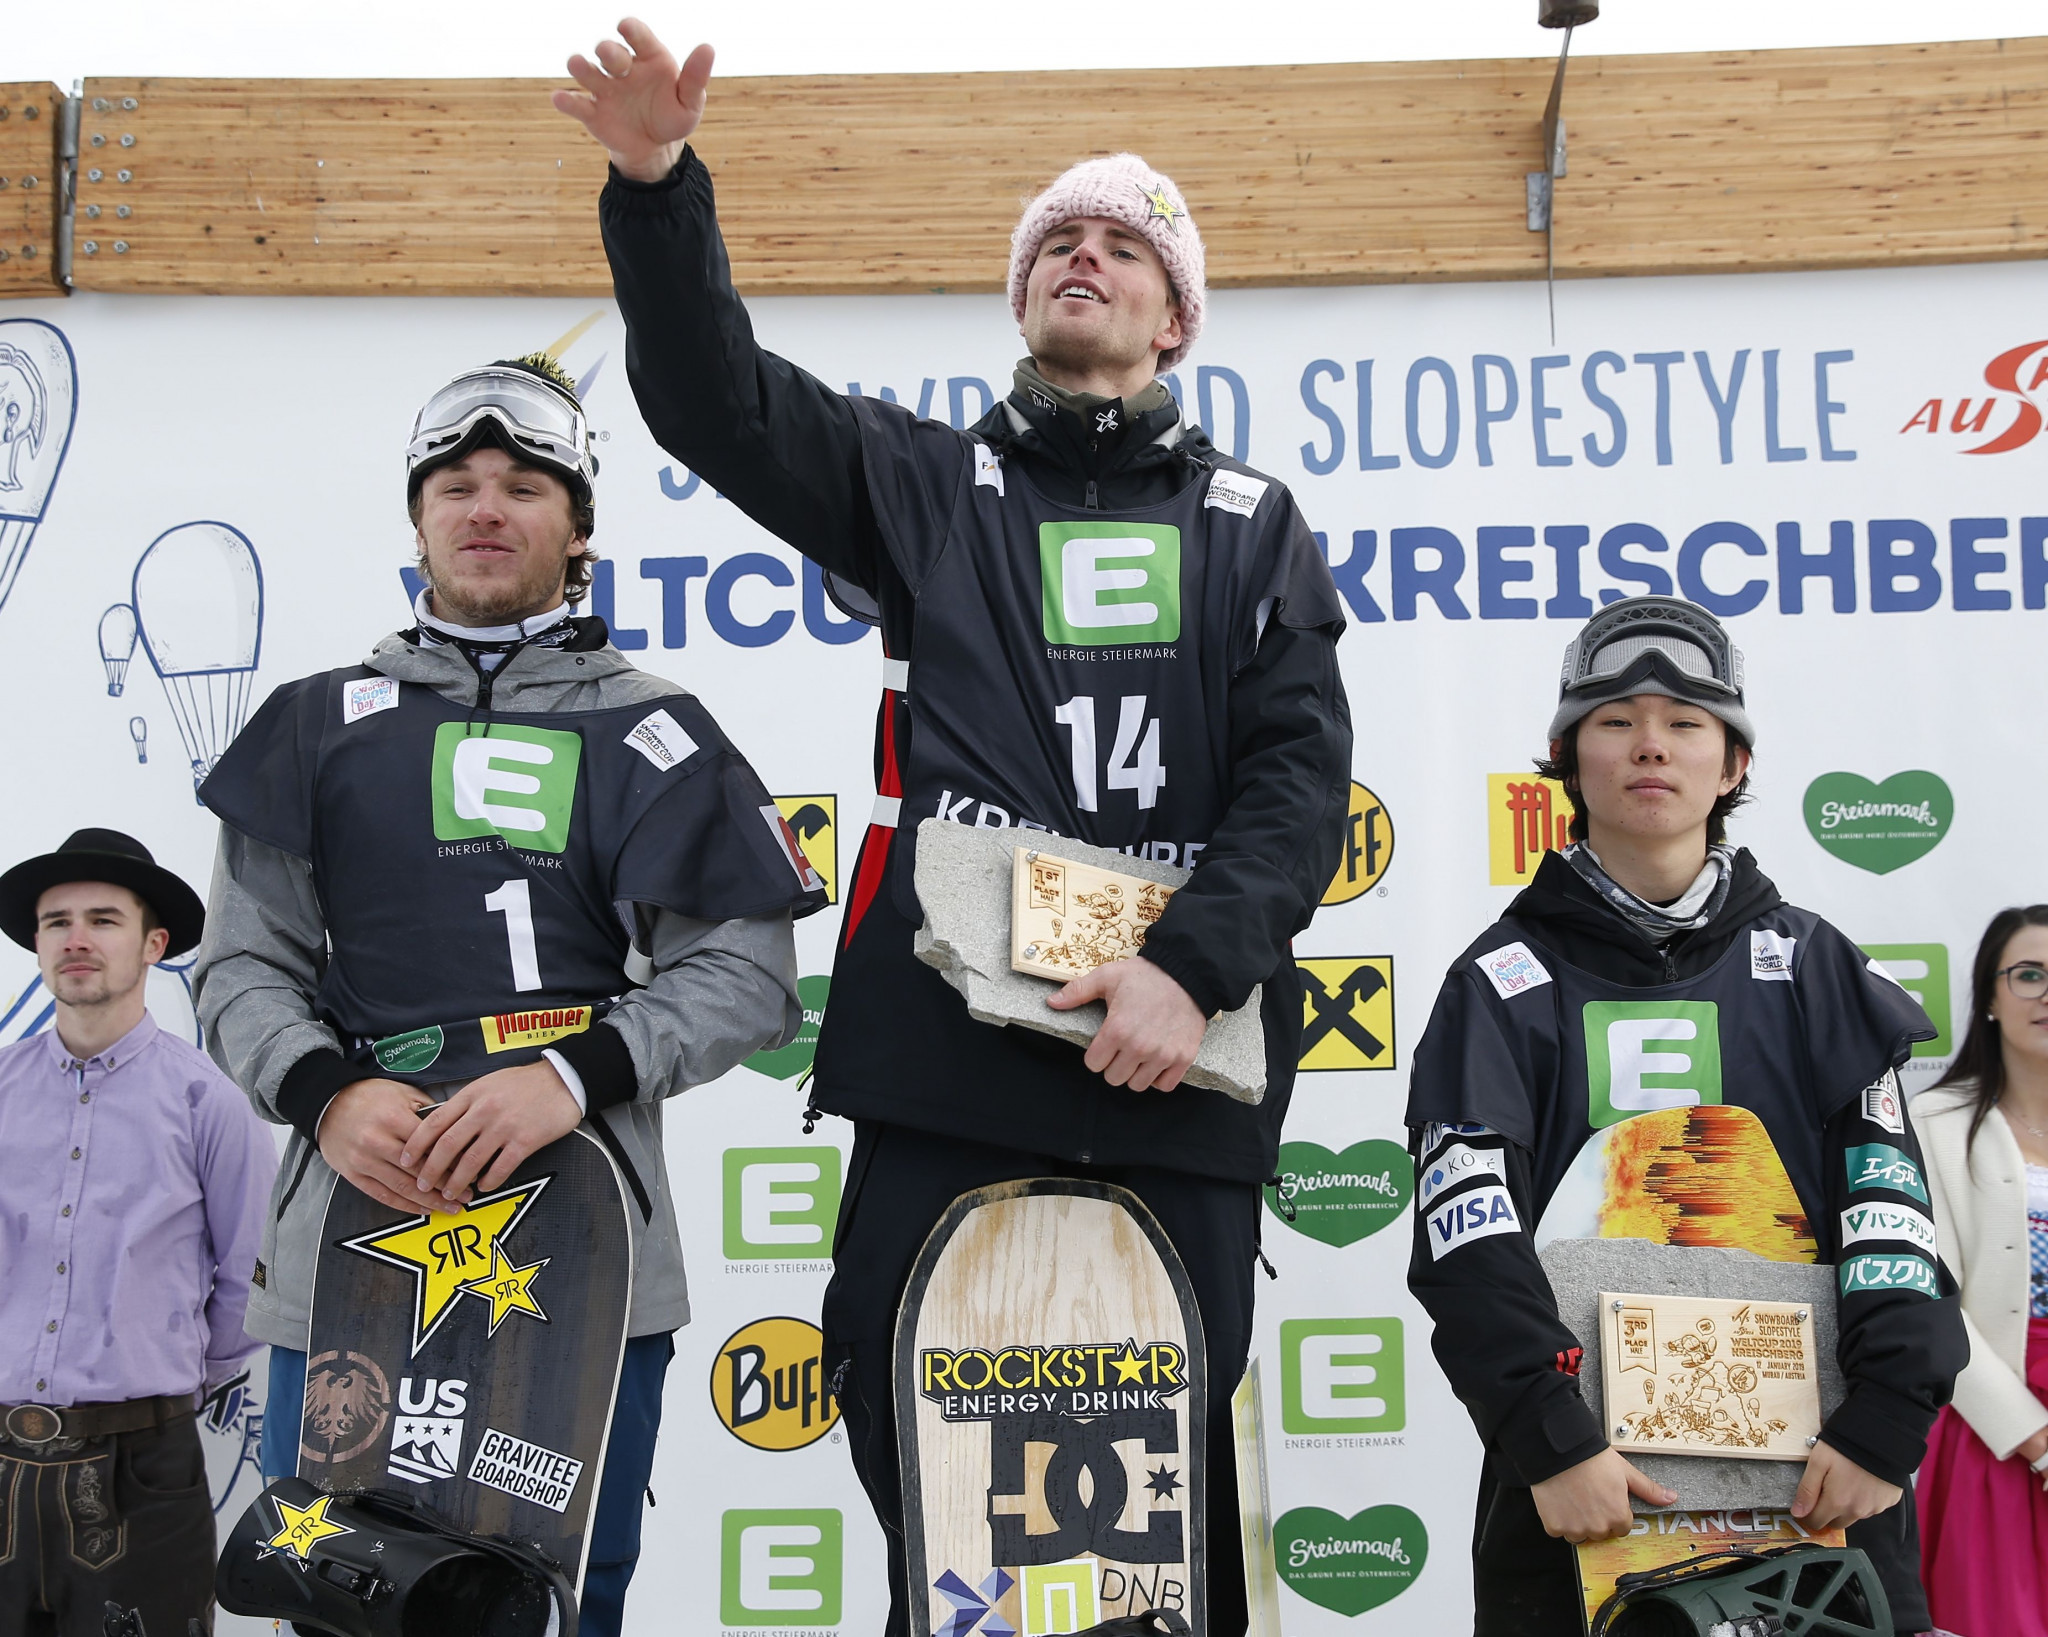 Norway's Mons Roisland won the men's slopestyle FIS Snowboard World Cup event in Kreishberg, with Chris Corning of the US coming second and Japan's Hiroaki Kunitake finishing third ©Getty Images